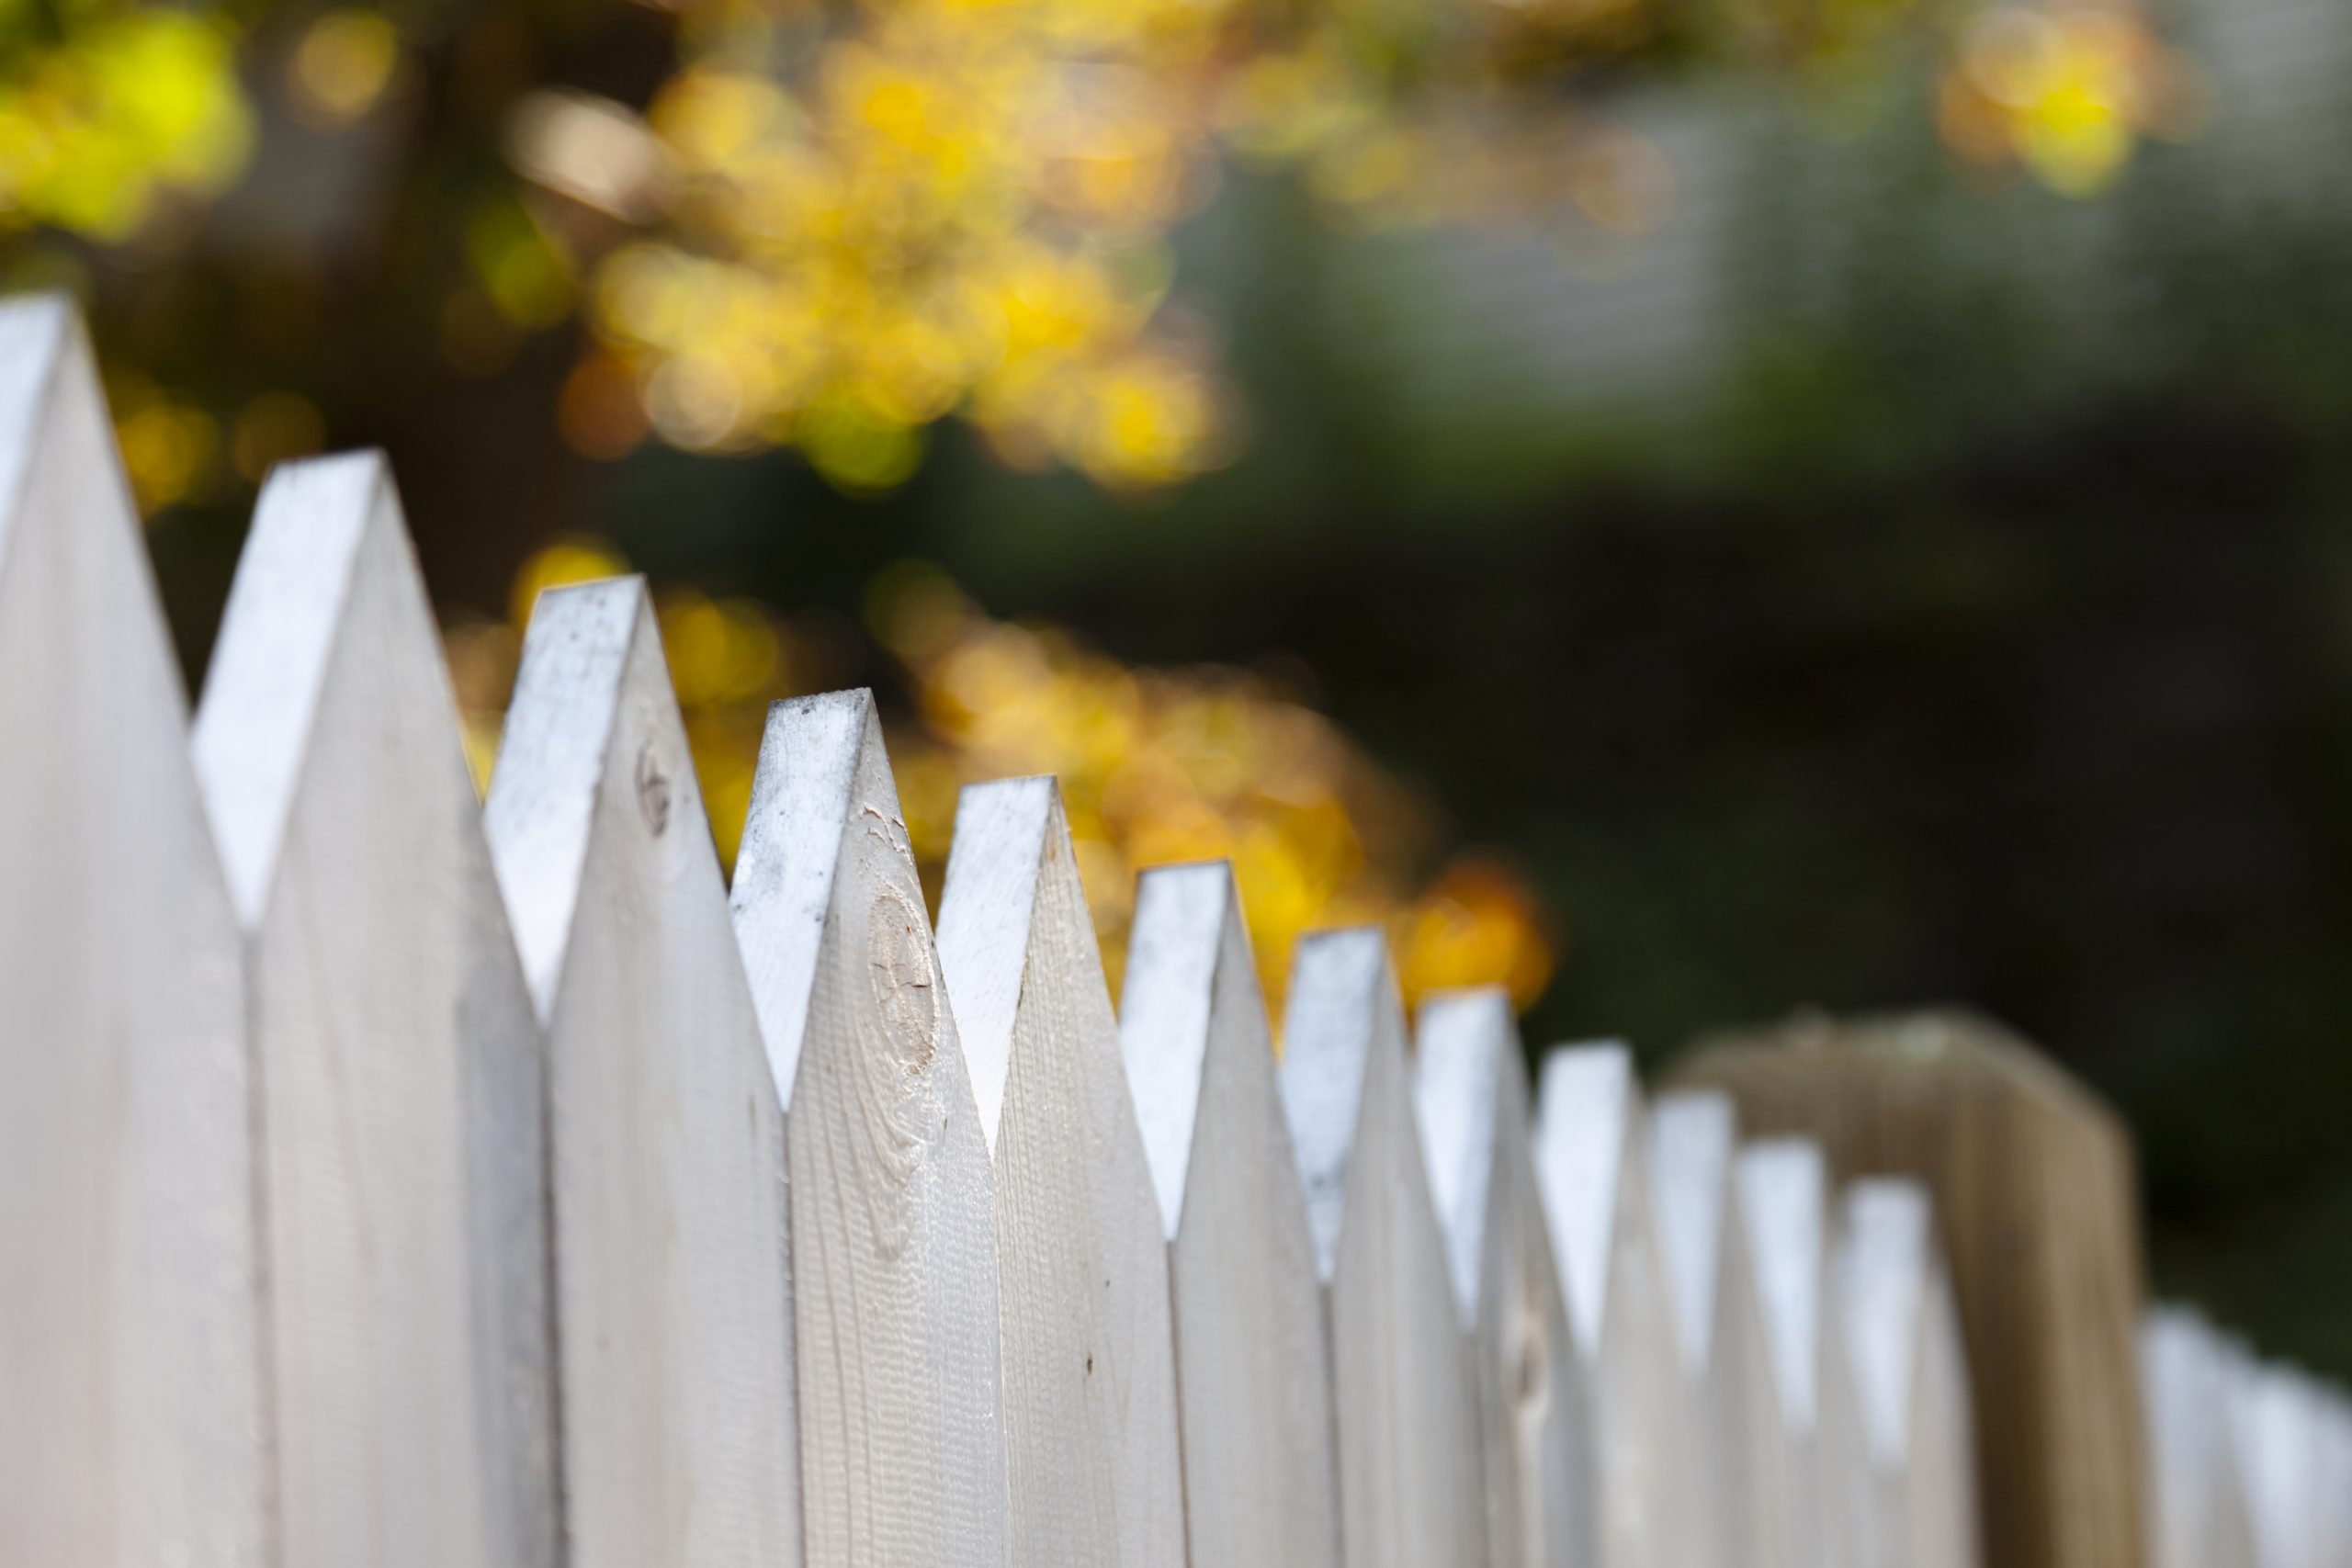 Straddling the Fence